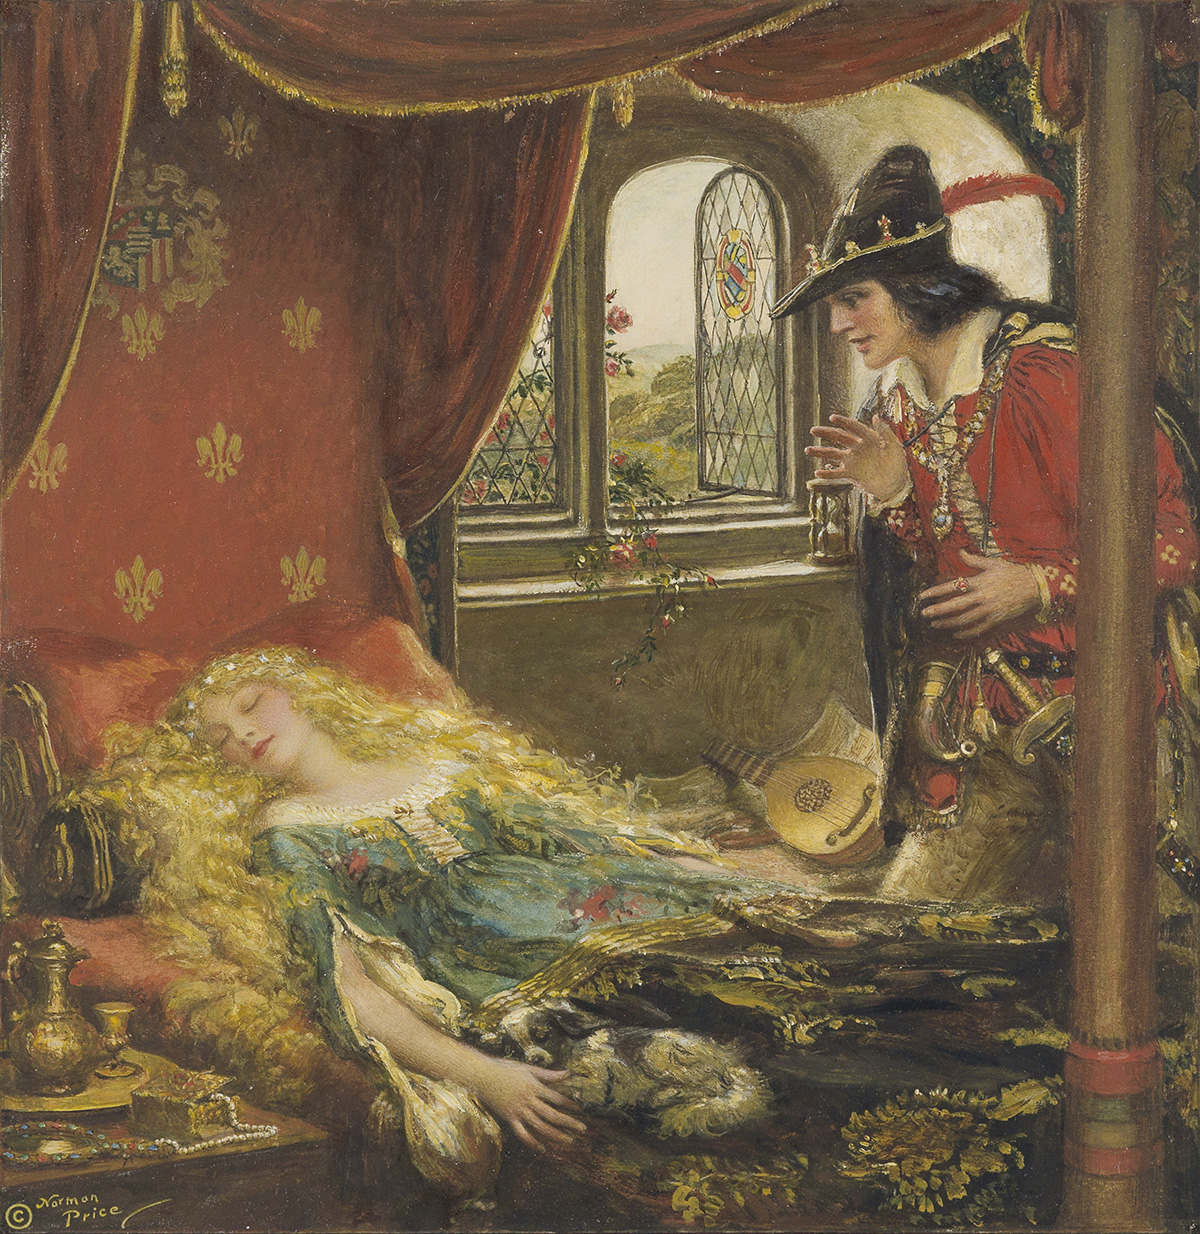 NORMAN PRICE. (FAIRY TALES / FABLES) The Sleeping Beauty.